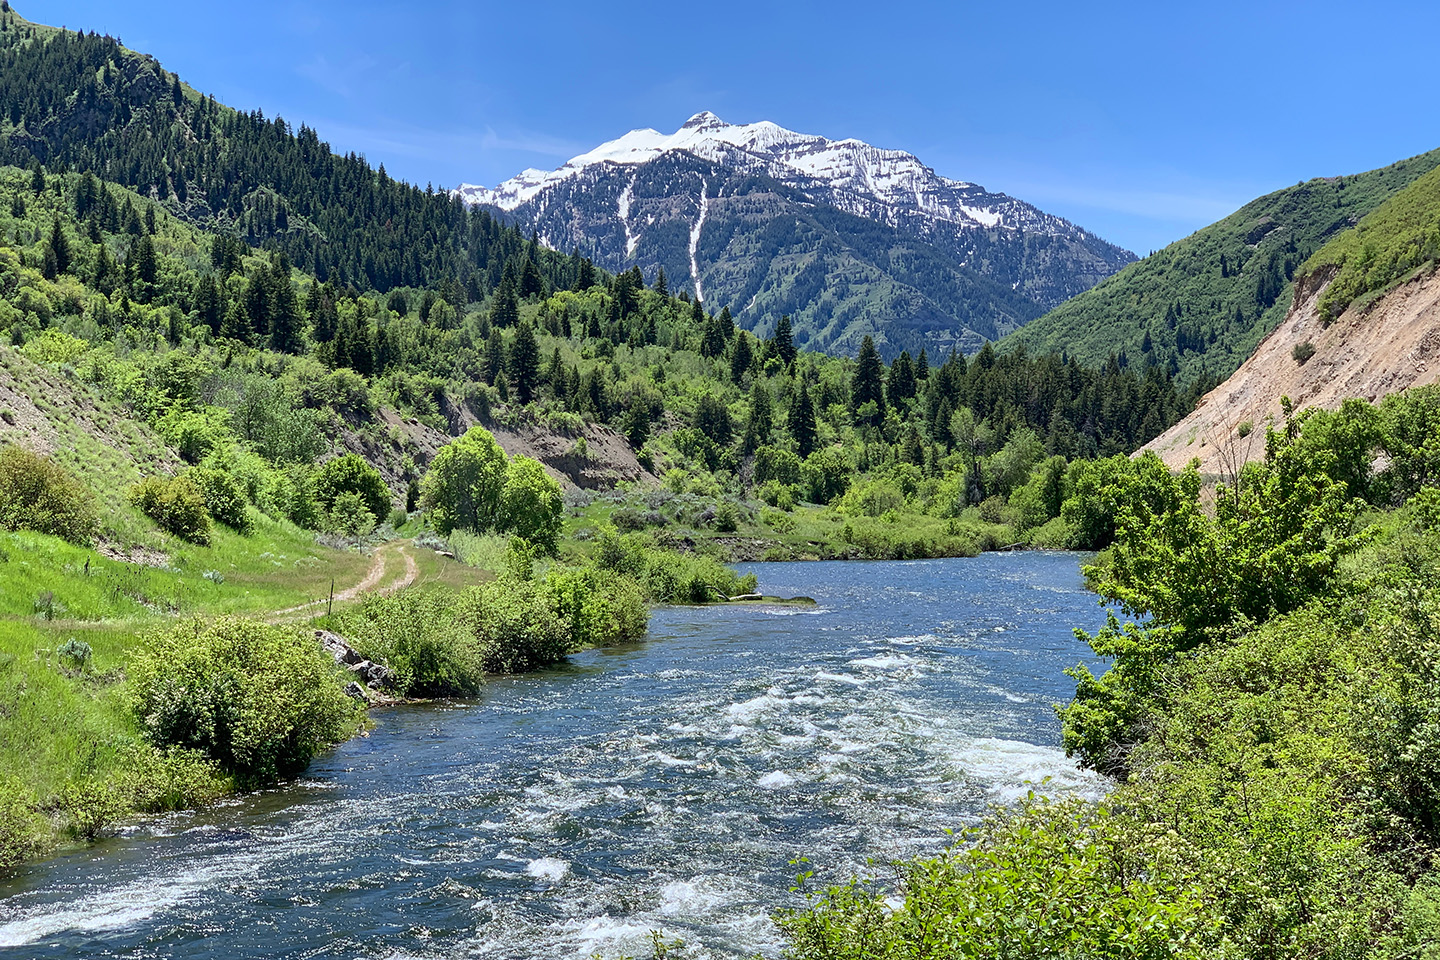 The Middle Provo River in Northern Utah, with mountains in the distance